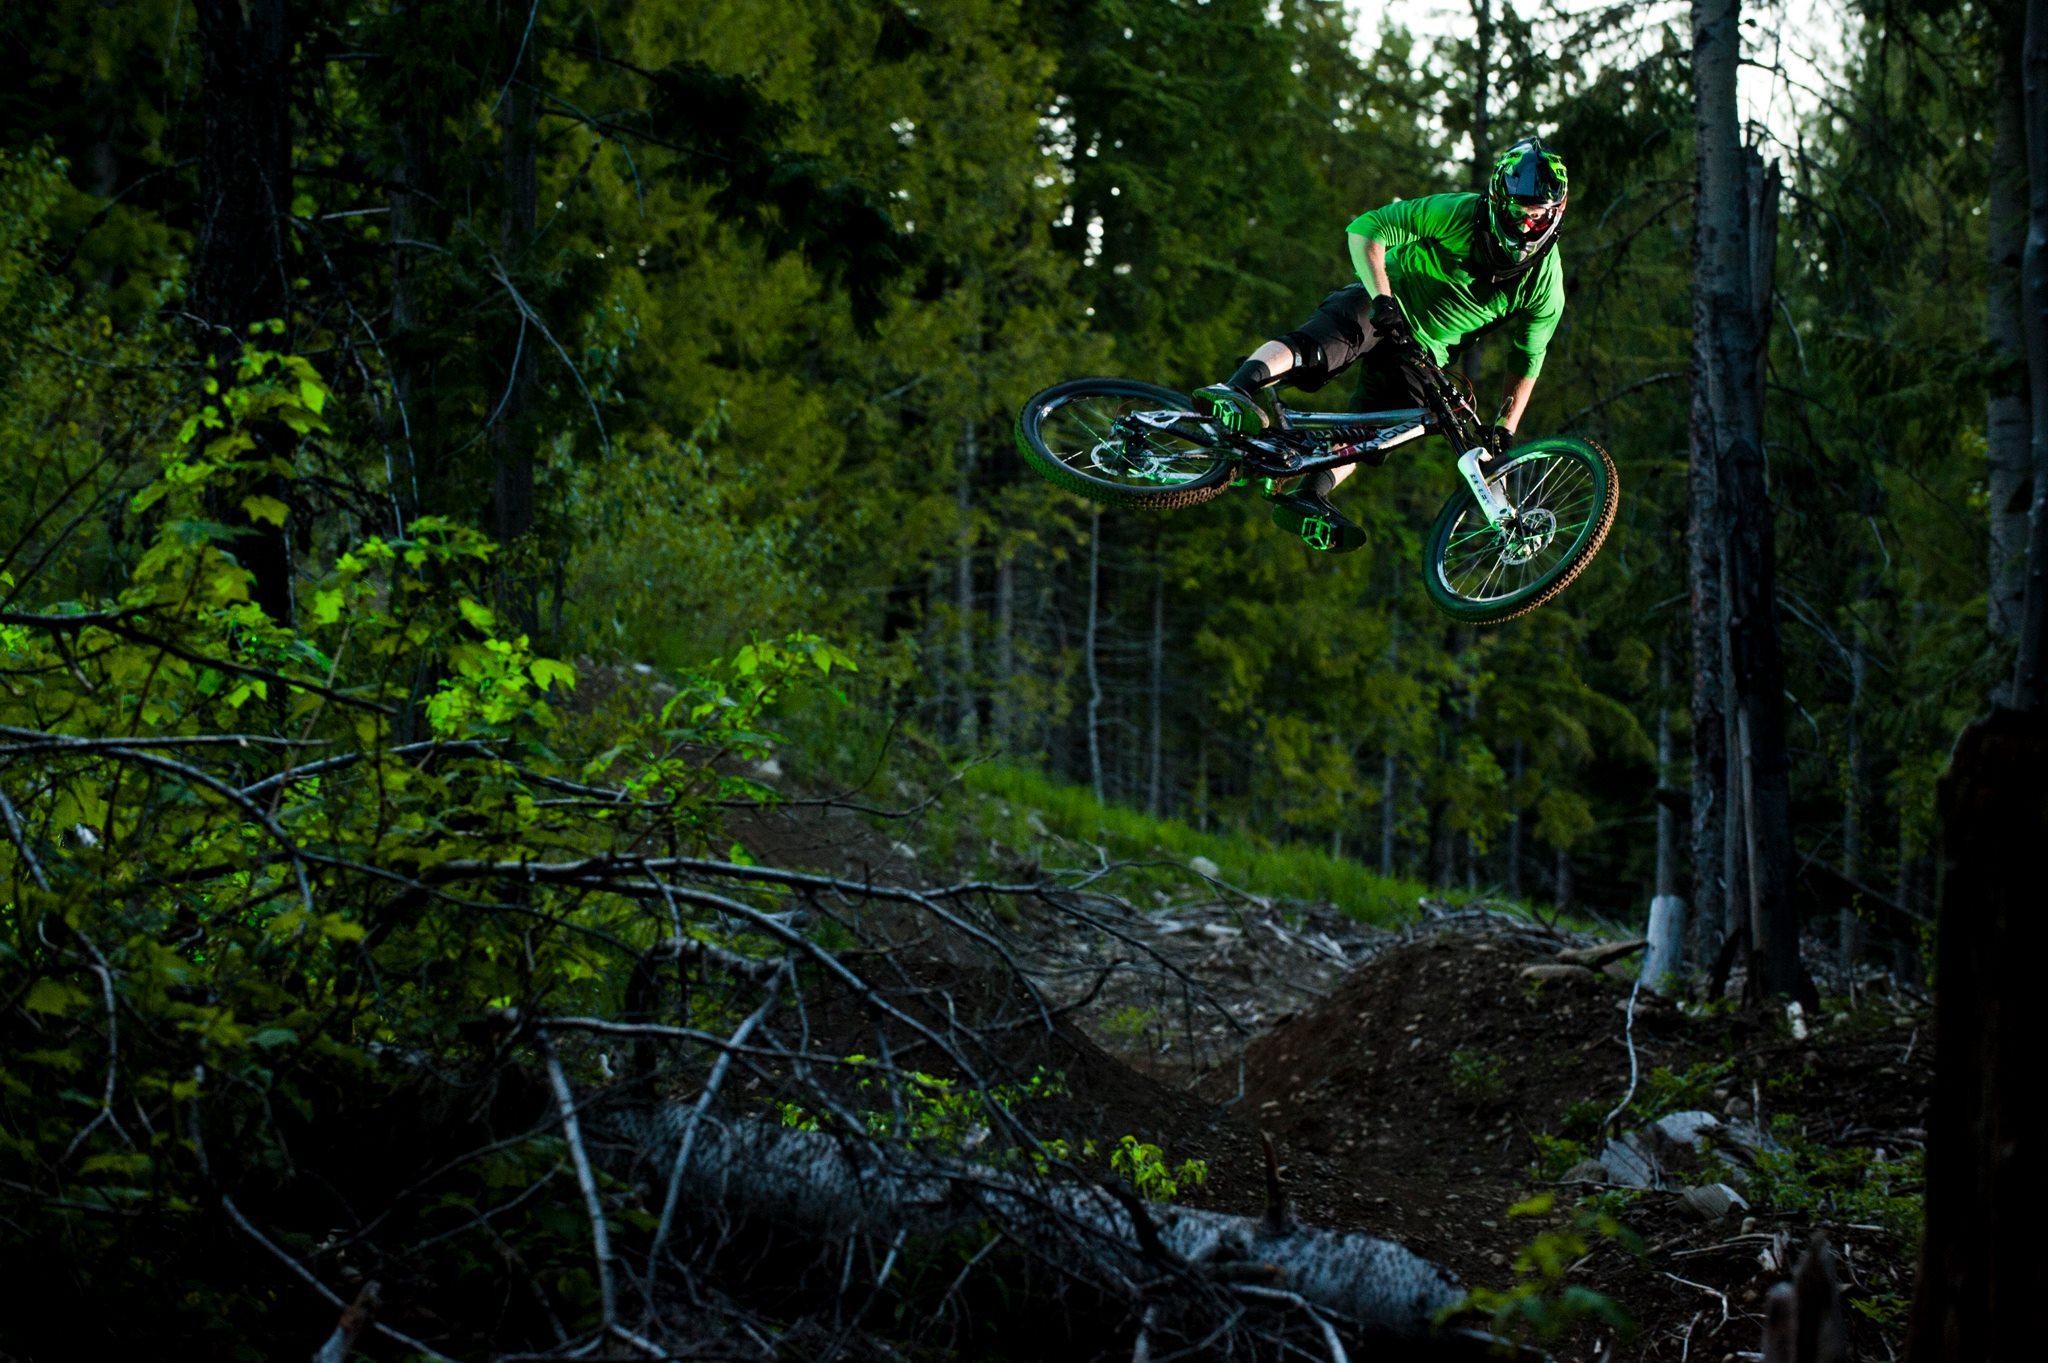 15 Mountain Bike Hd Wallpapers Background Images Wallpaper Abyss